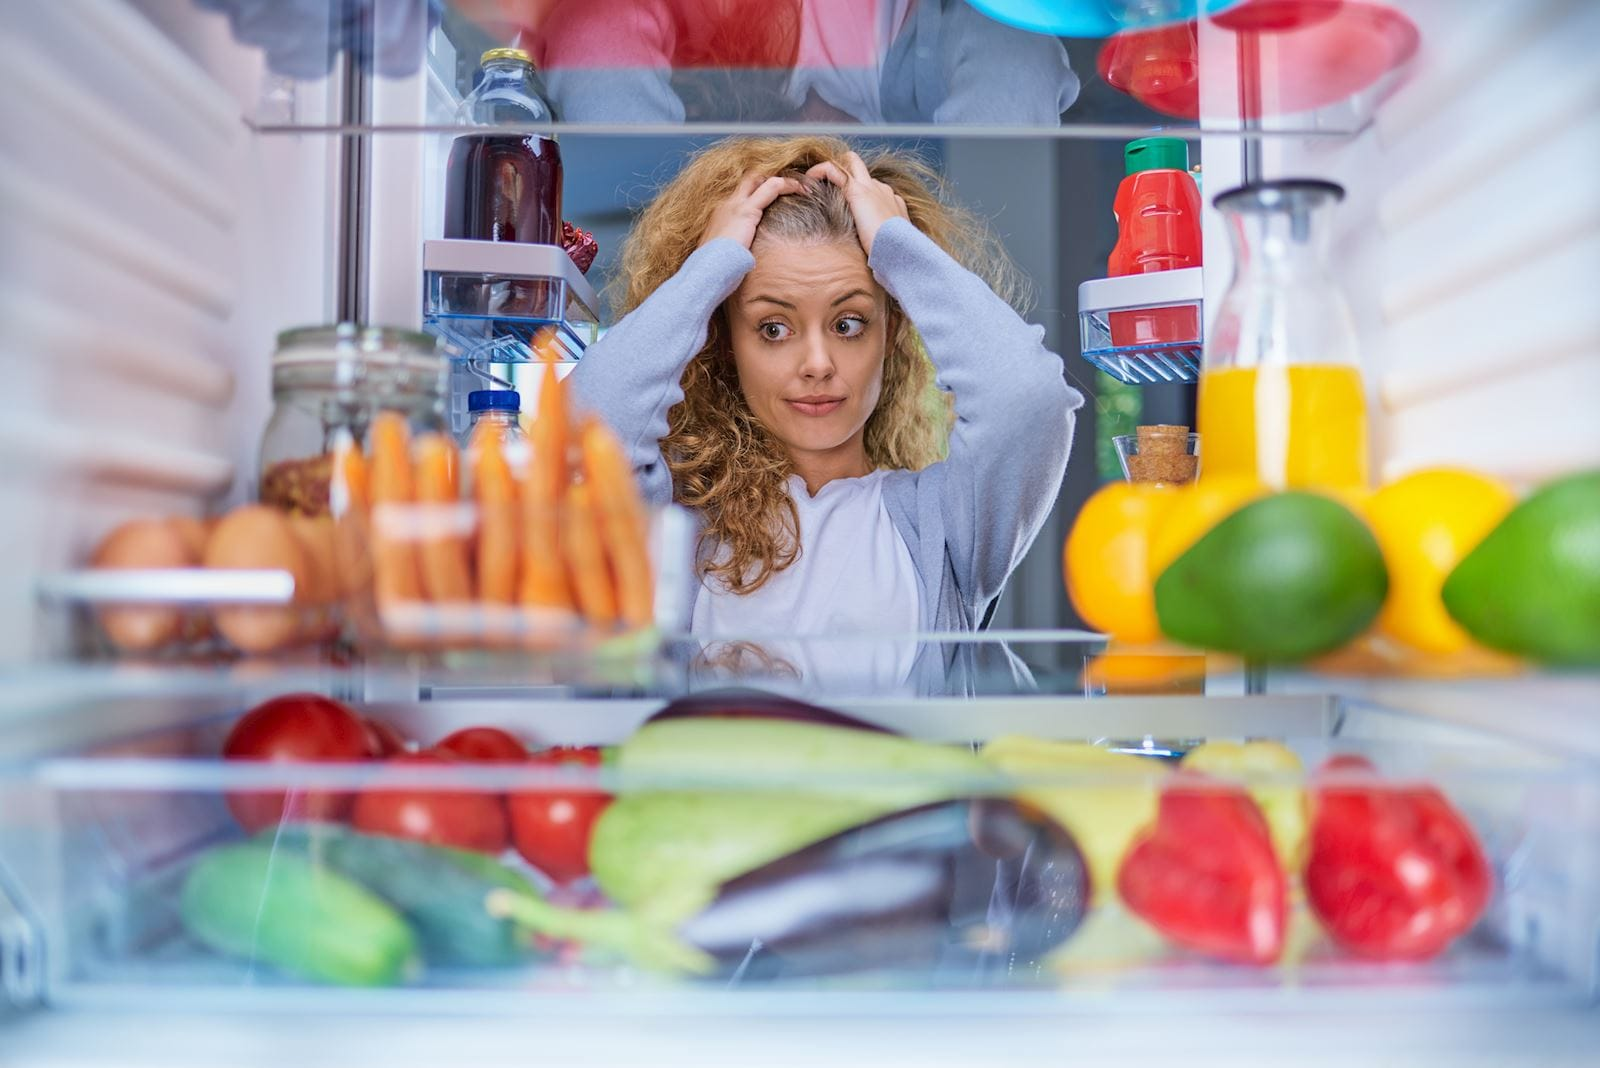 woman stands in front of a fridge filled with vegetables